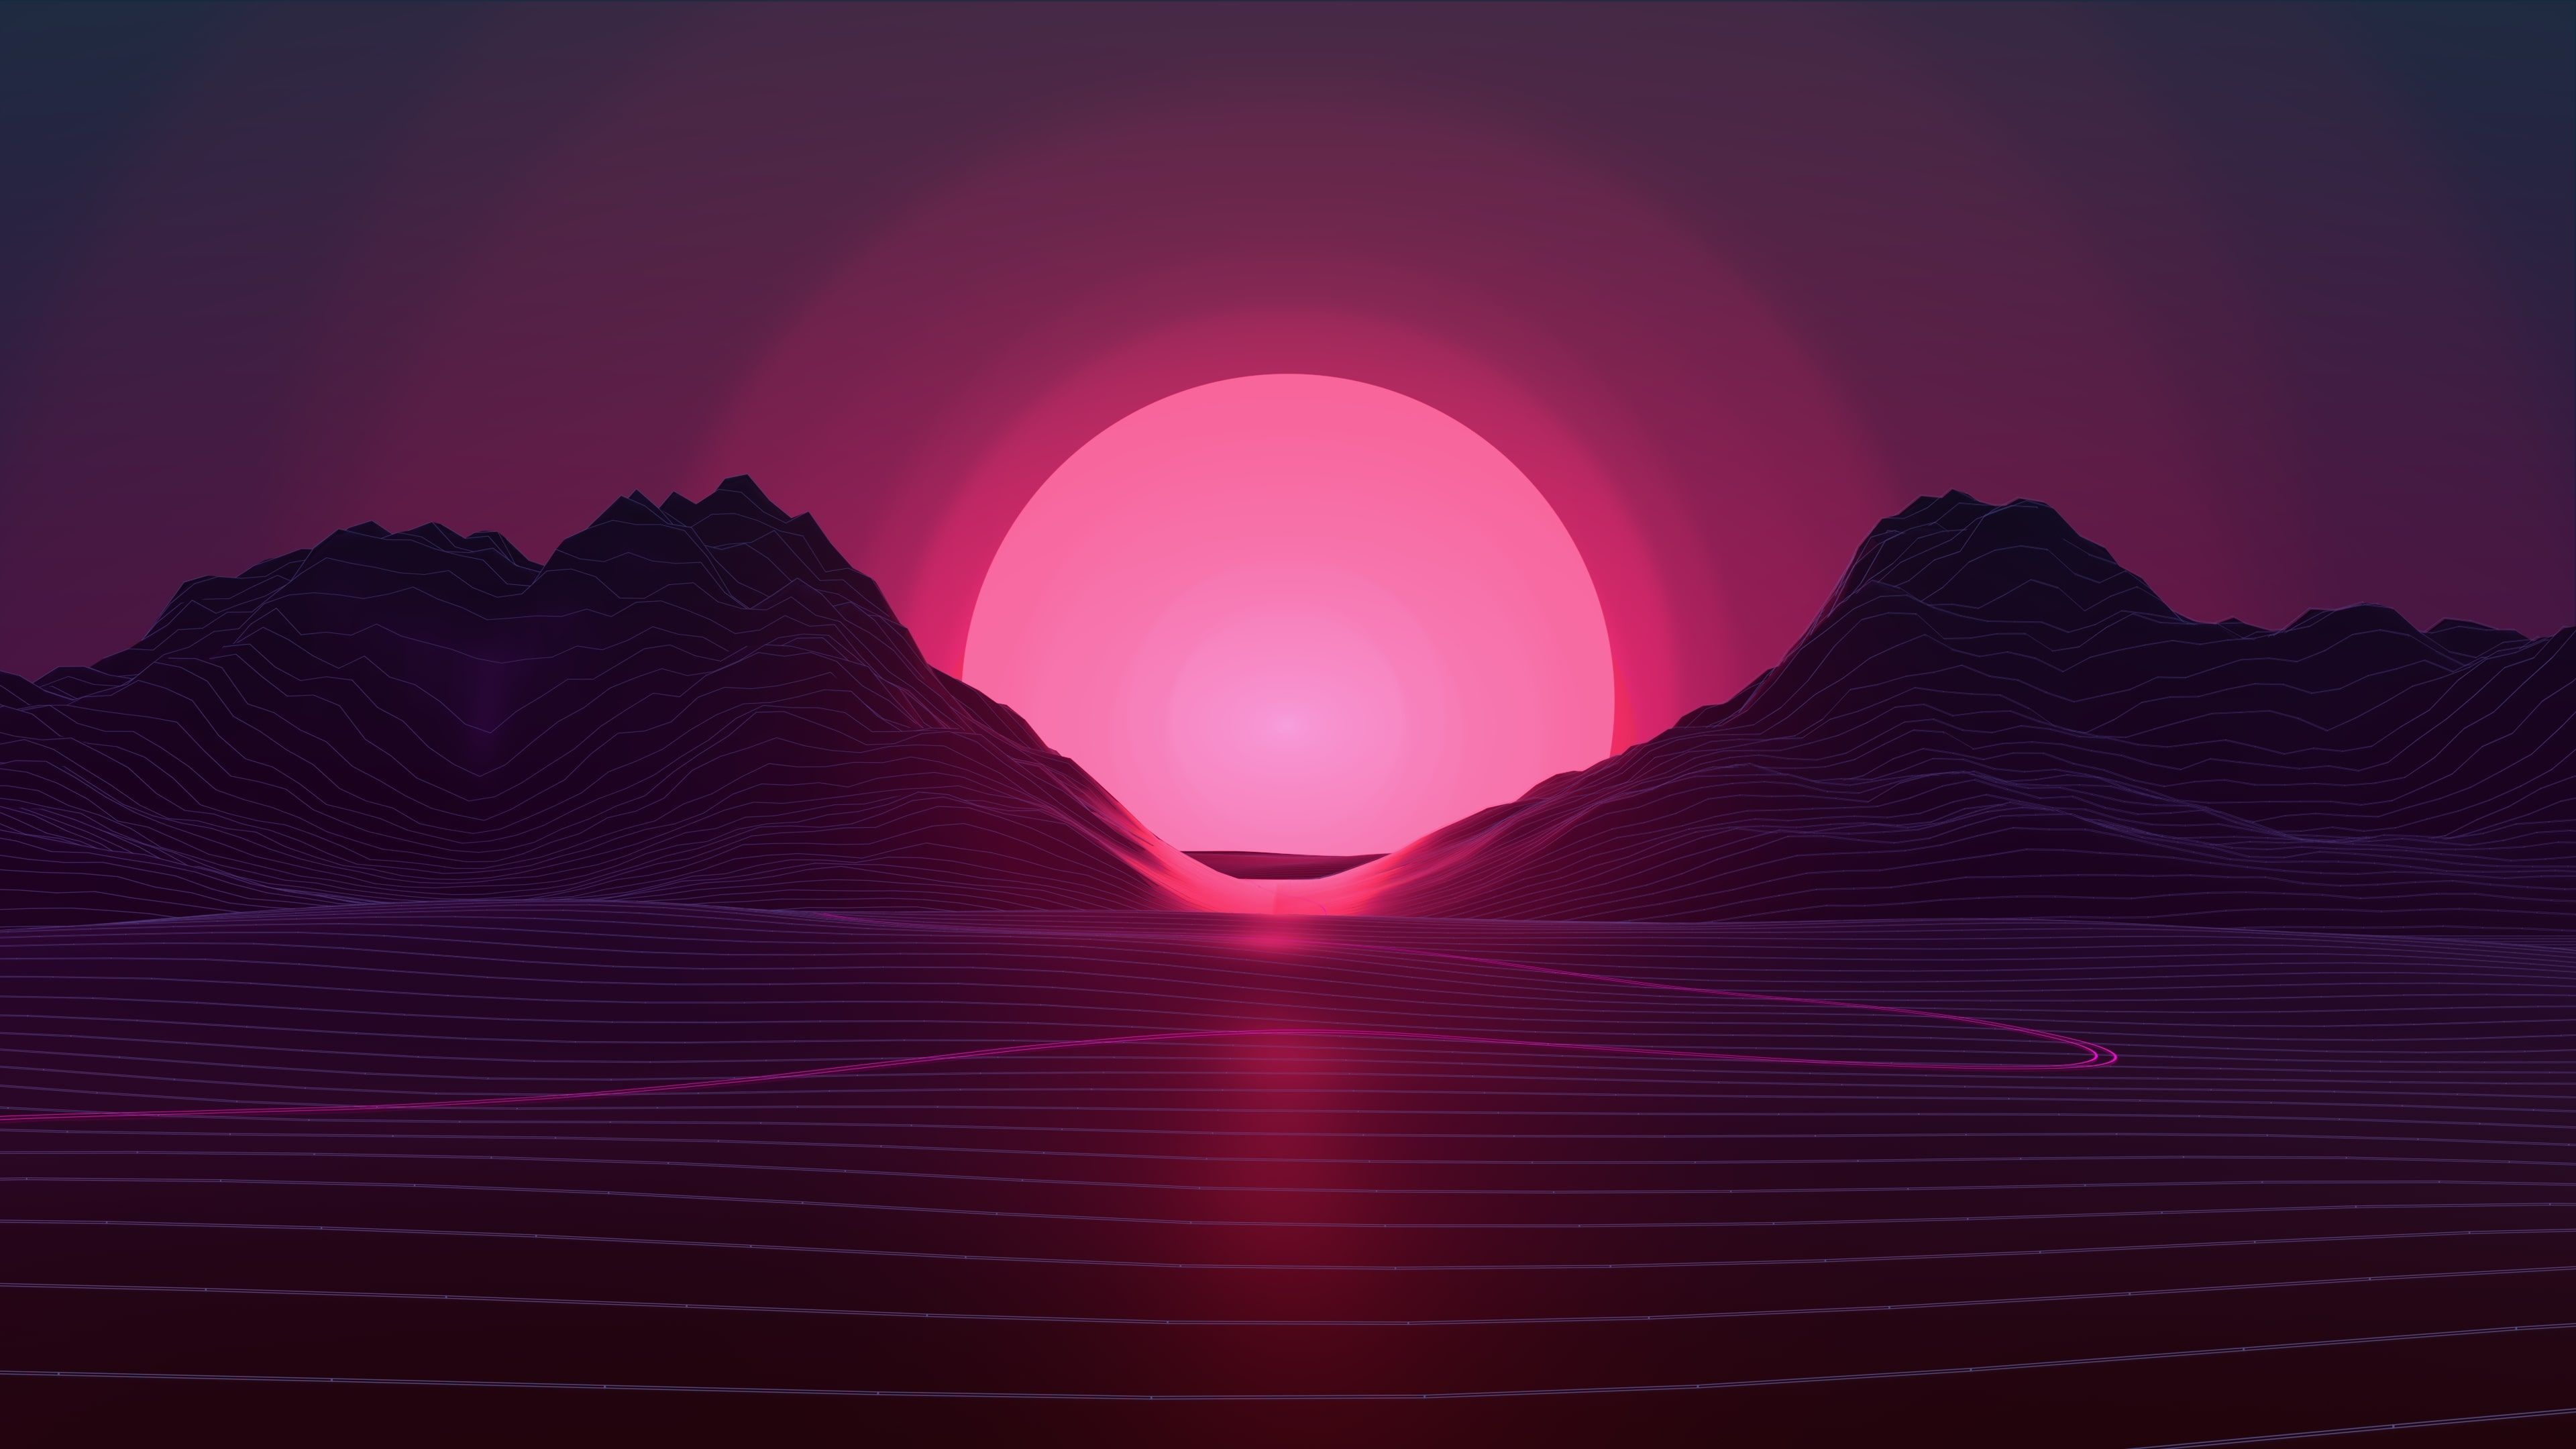 Sunset Aesthetic Neon Ps4 Hd Wallpapers Wallpaper Cave